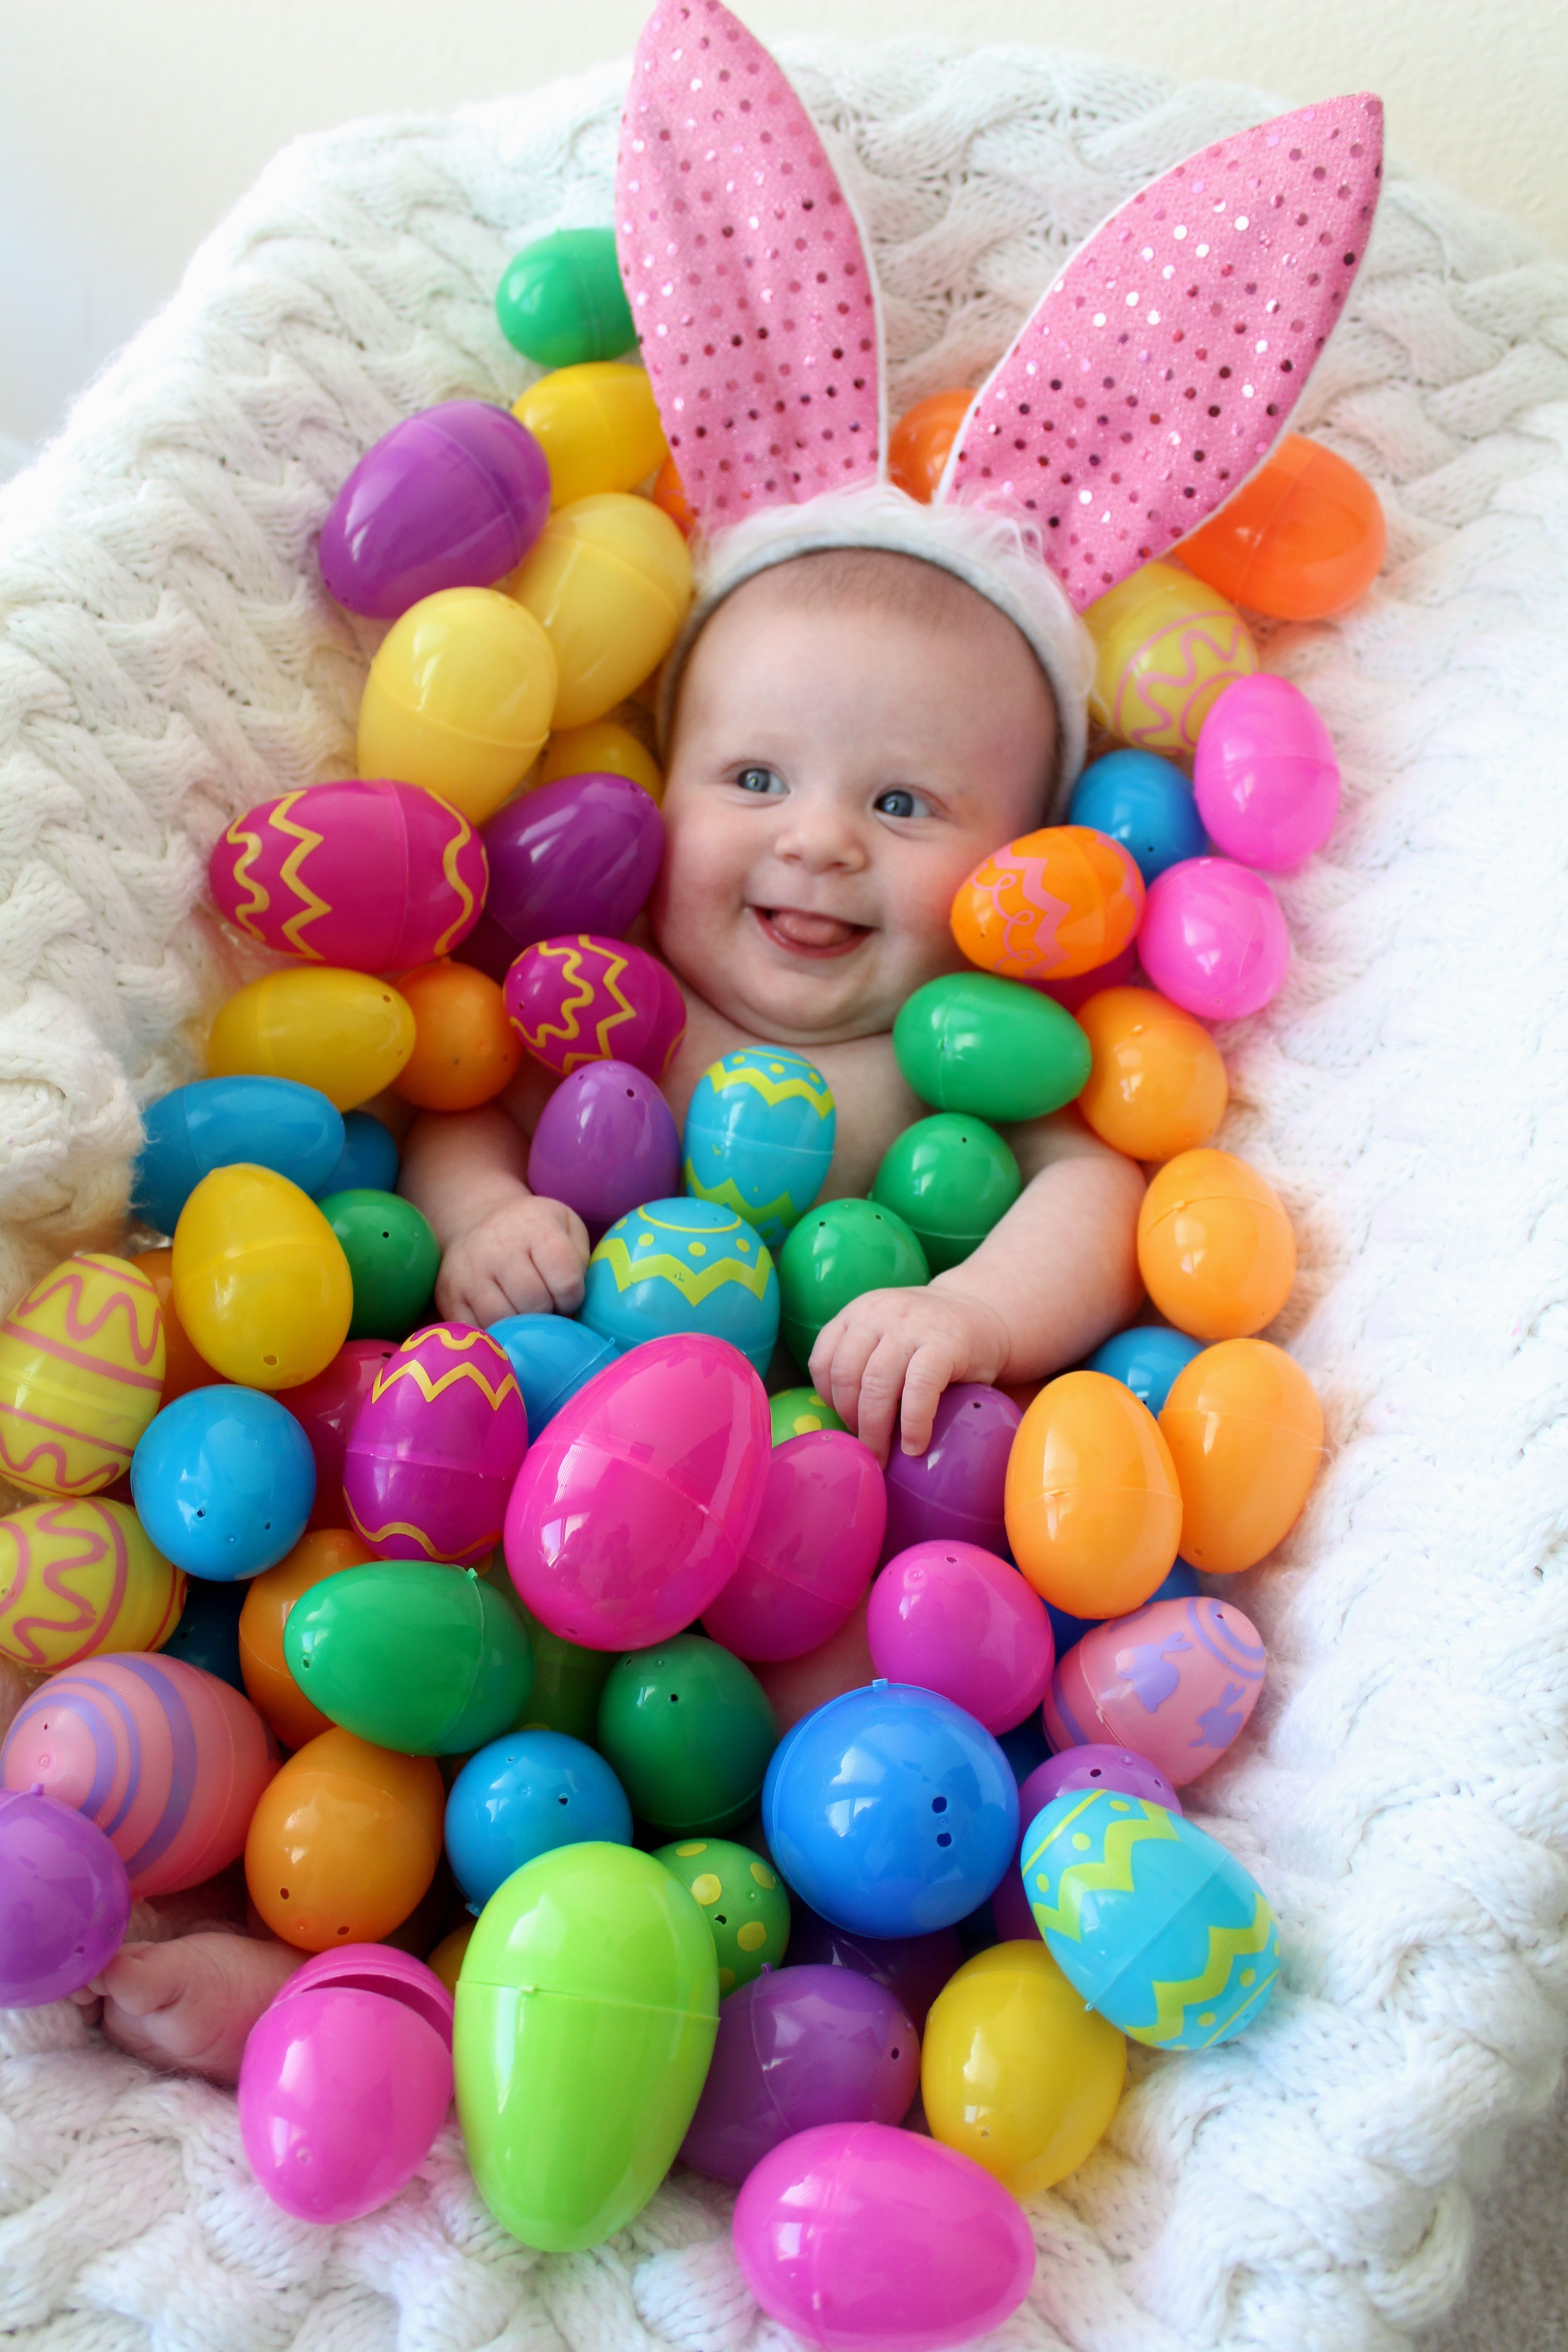 Baby's first easter pic Find this Pin and more on Easter by Anna Kononova. Kinda wanna do this for an Easter basket. Then each child will have a big basket to store stuff in lol.